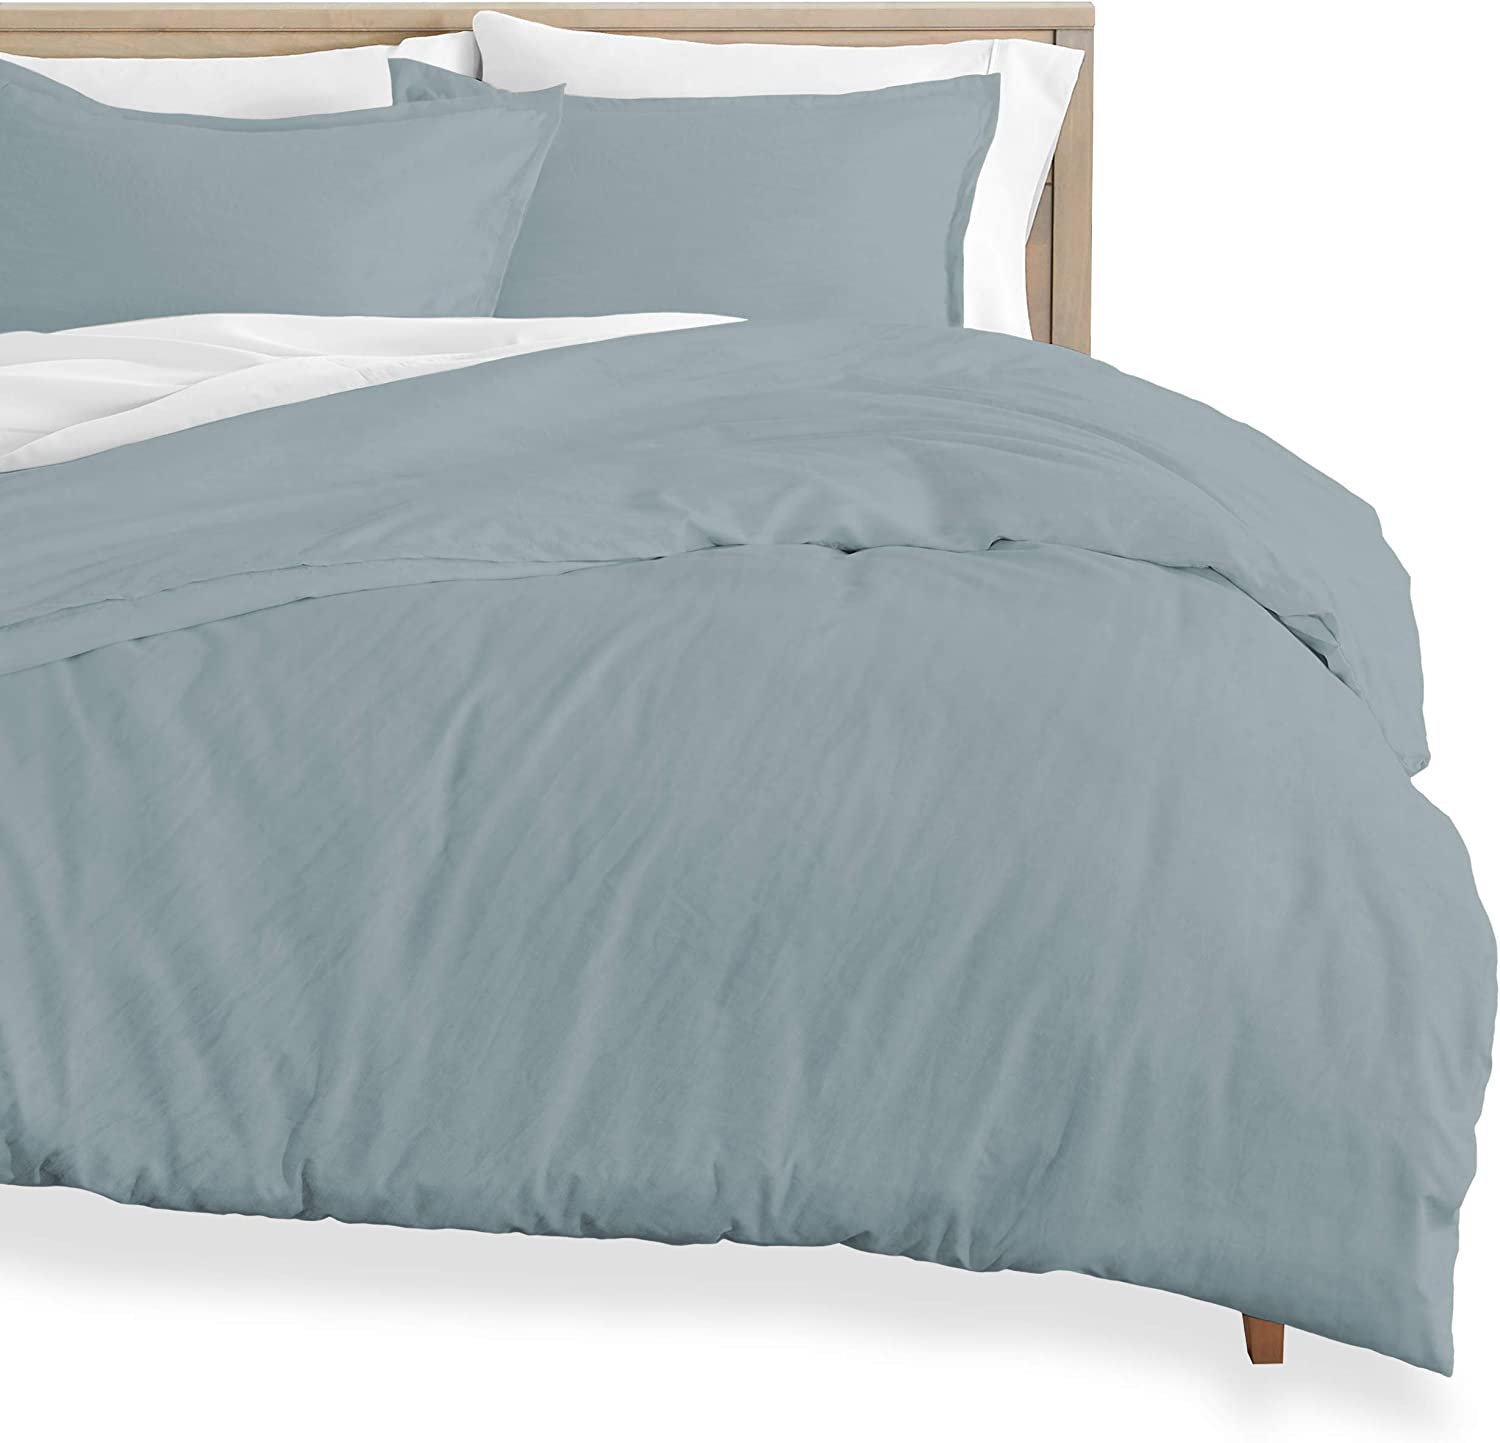 Bare Home Washed Duvet Cover and Sham Set - Twin/Twin XL - Premium 1800 Ultra-Soft Brushed Microfiber - Hypoallergenic, Easy Care, Stain Resistant (Twin/Twin XL, Sandwashed Dusty Blue)